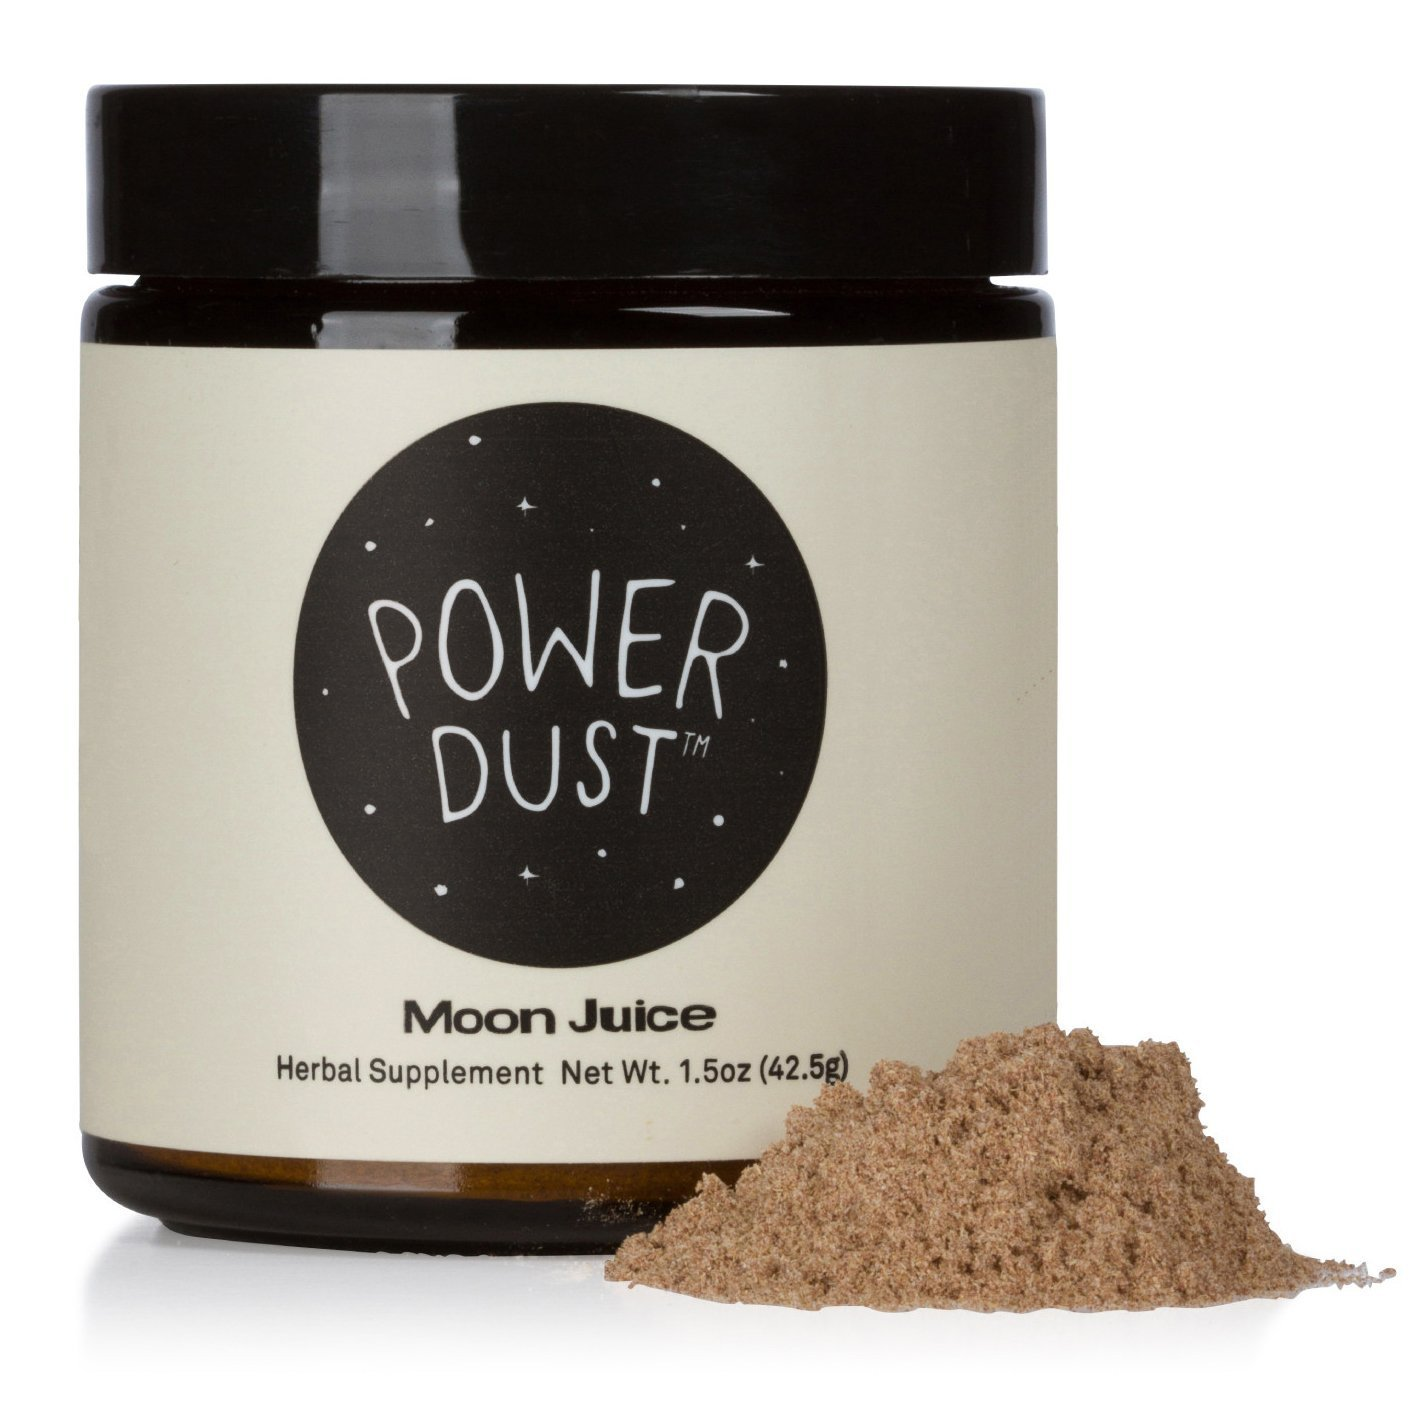 Moon Juice - Organic + Wildcrafted Edible Strength (Power Dust, 1.5 oz)